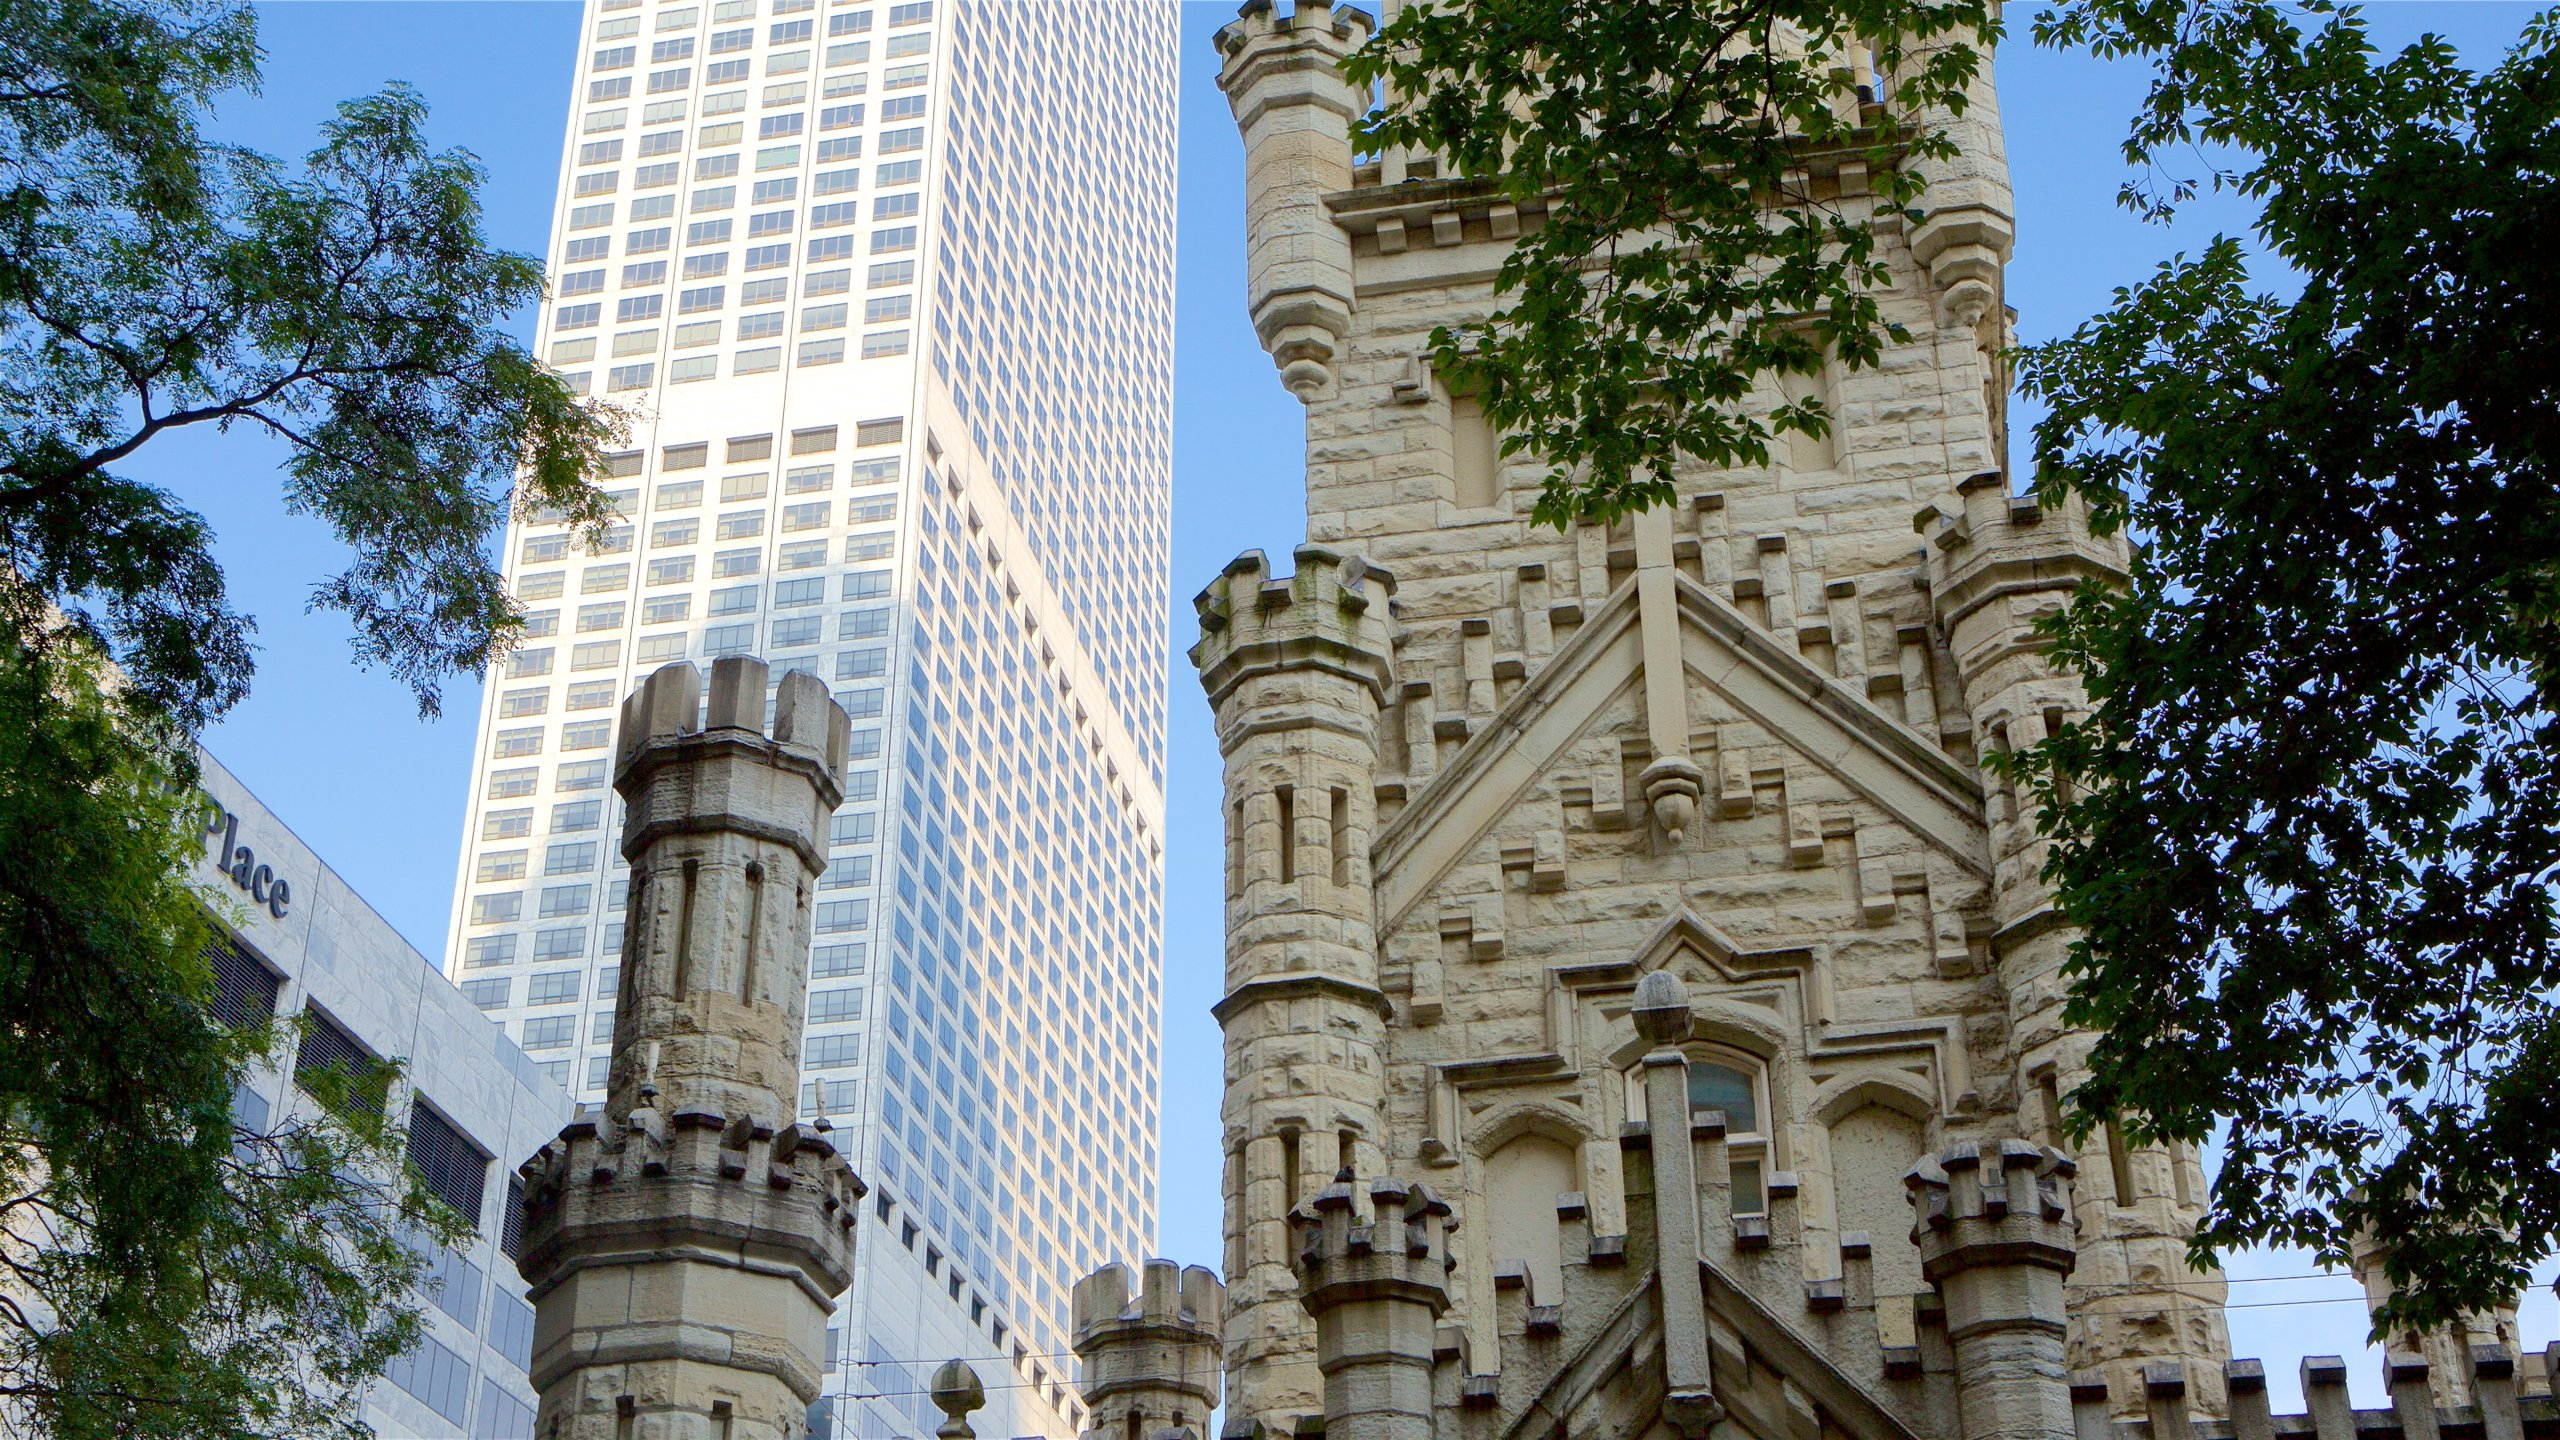 Chicago Water Tower, Chicago, Illinois, United States of America